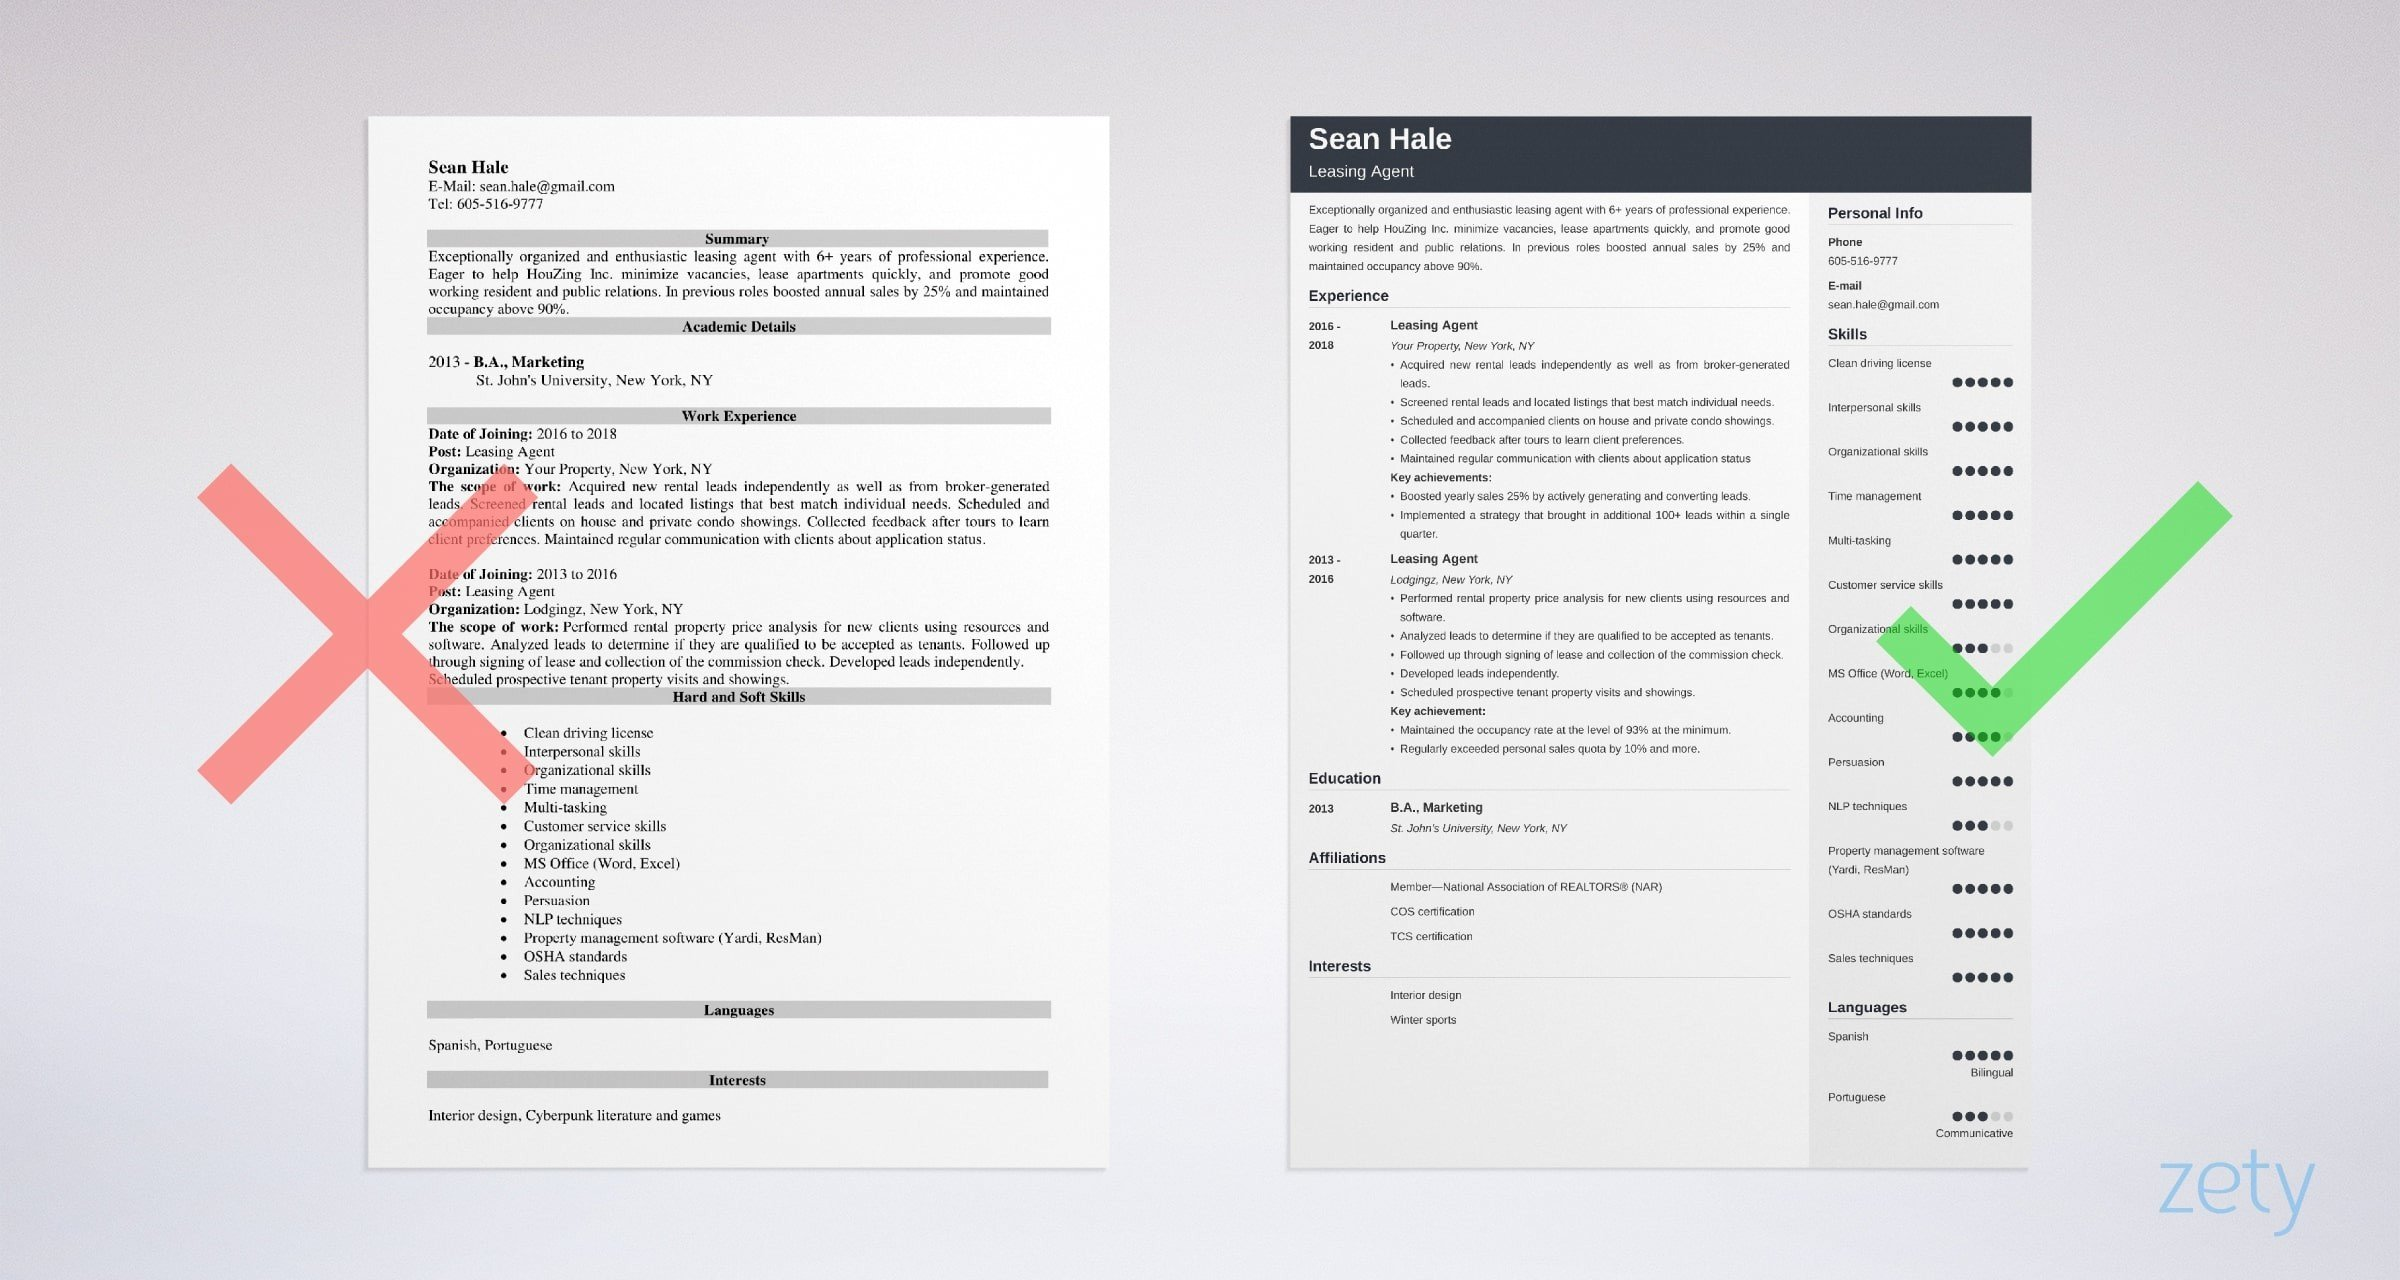 Leasing Agent Resume Templates